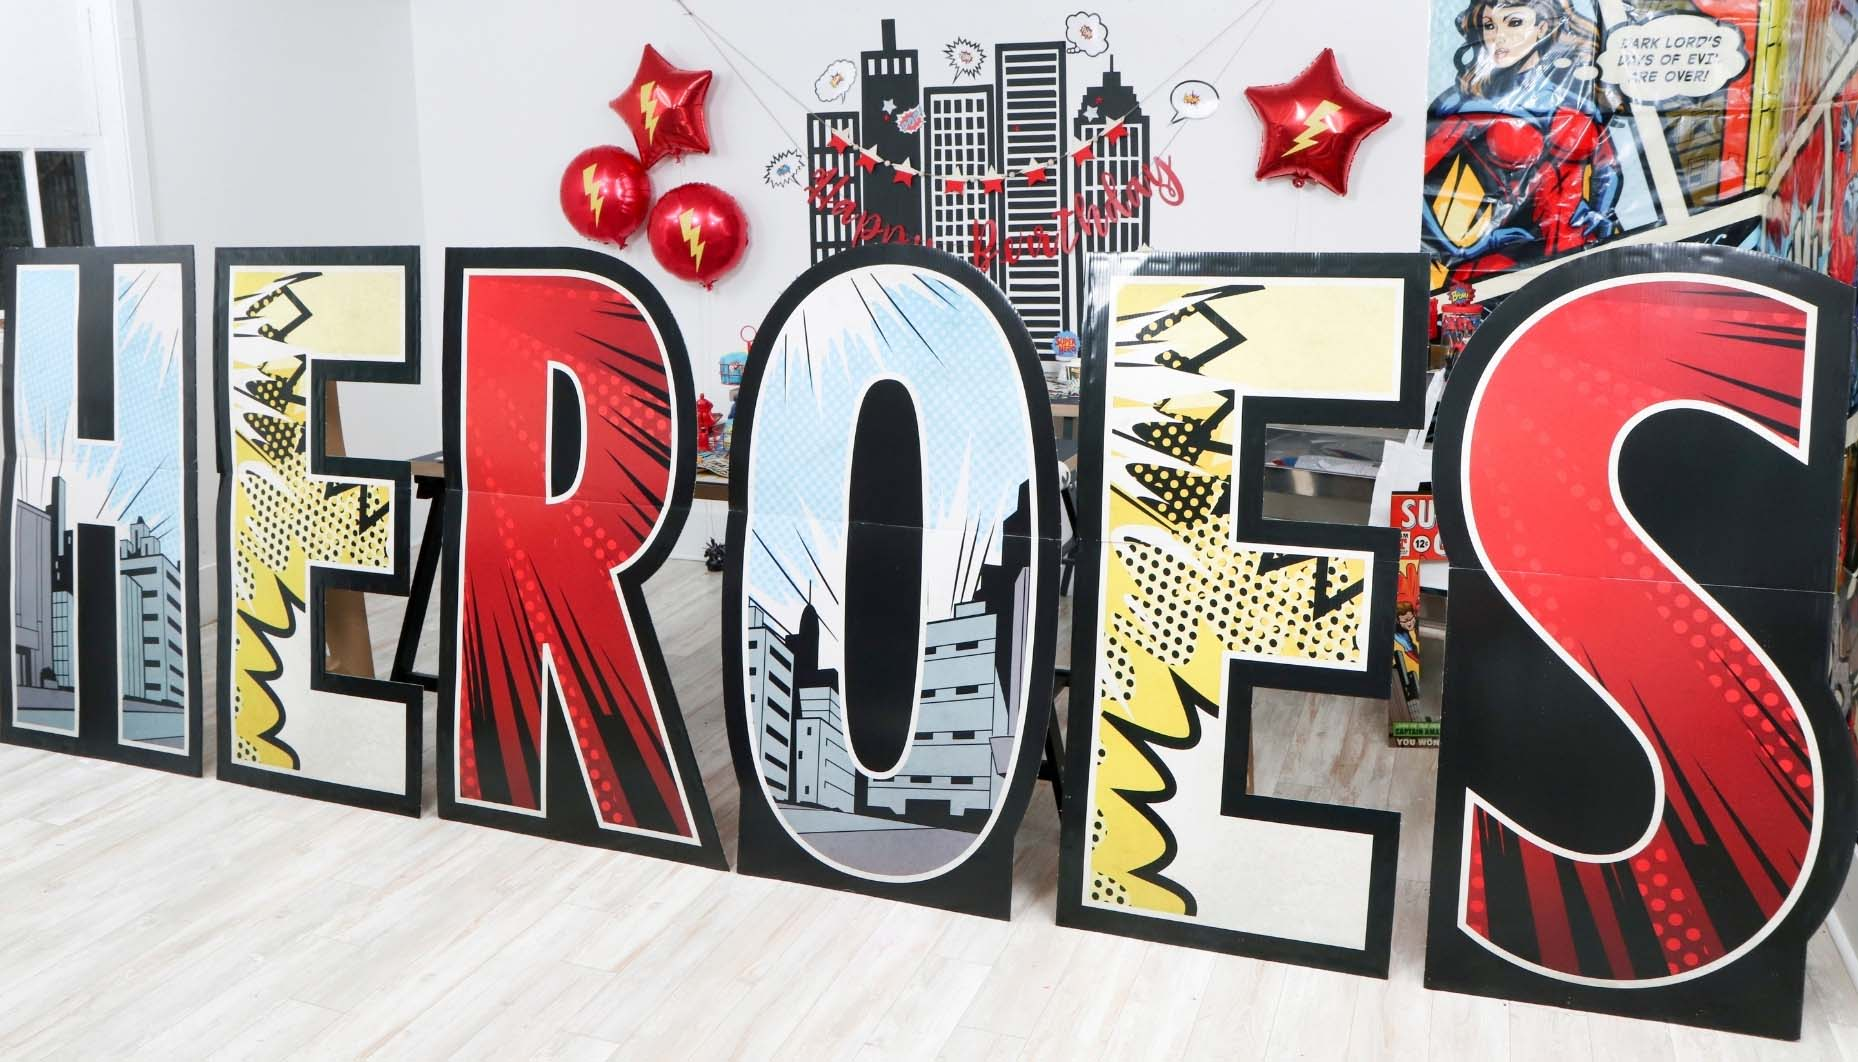 superhero party cardboard standup letters